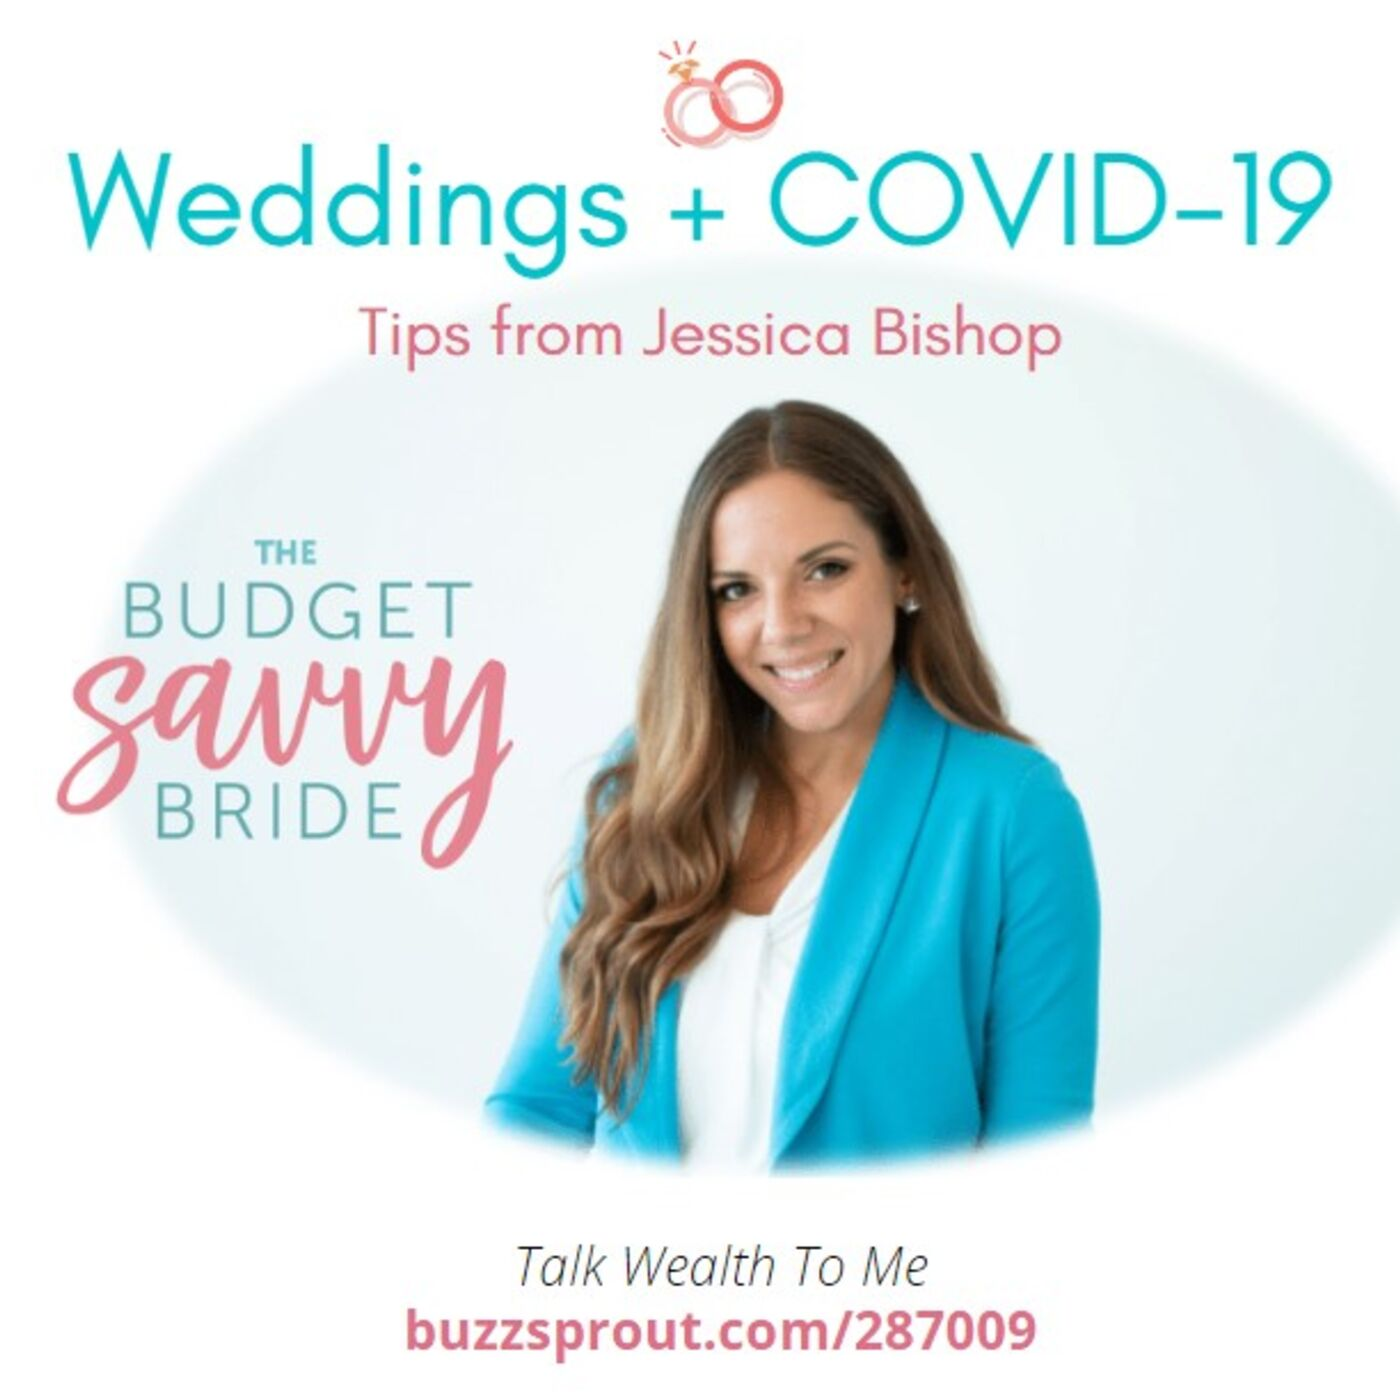 Weddings + COVID-19: Tips from The Budget Savvy Bride